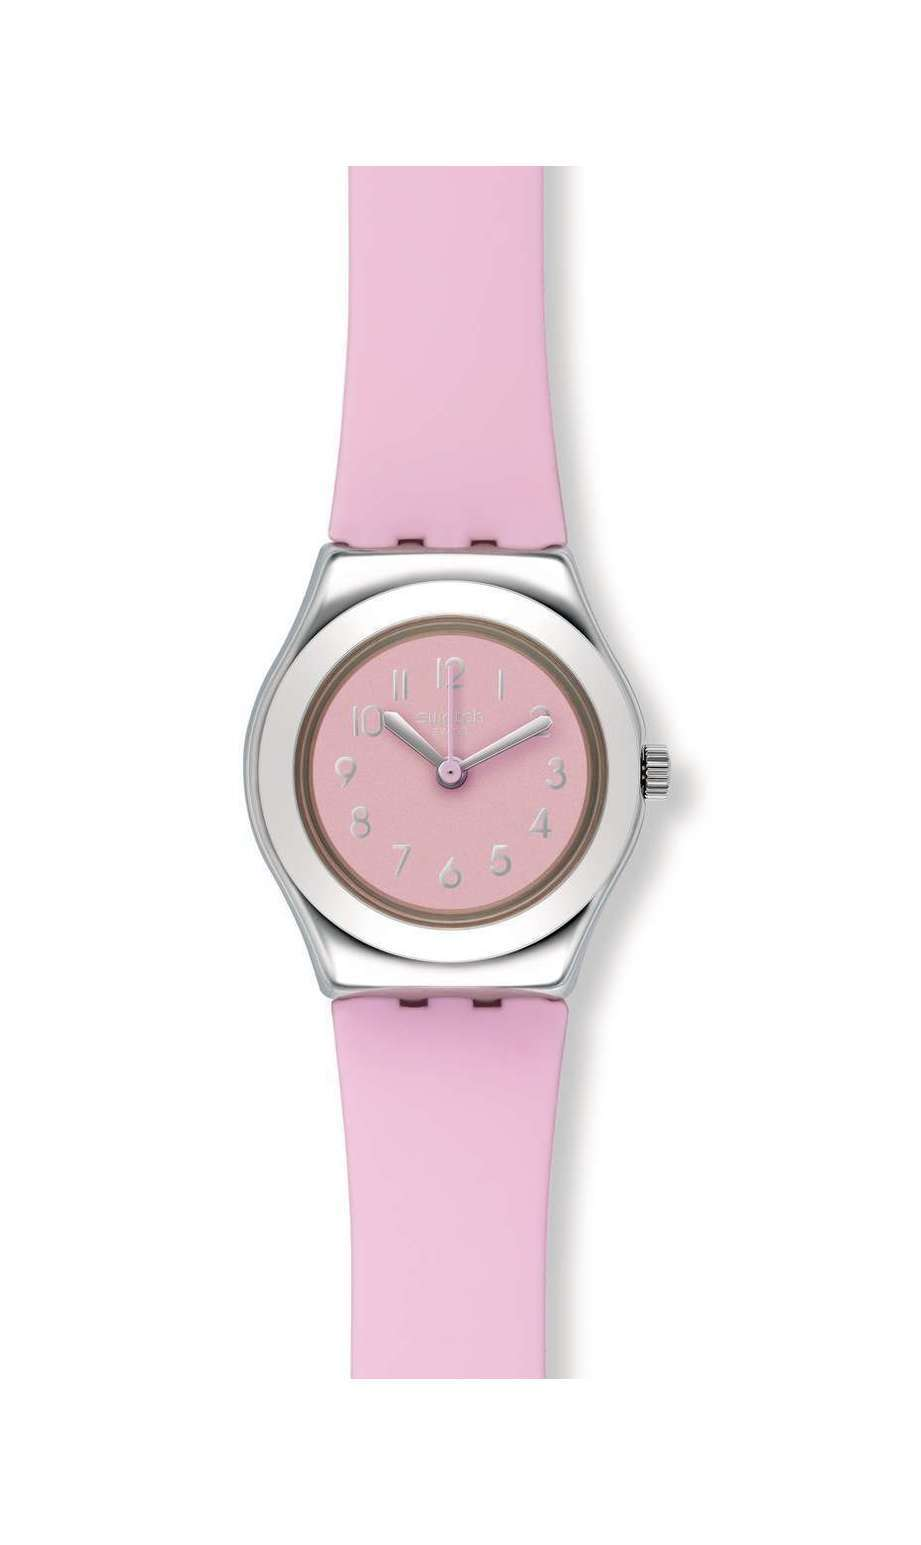 Swatch - CITE ROSEE - 1